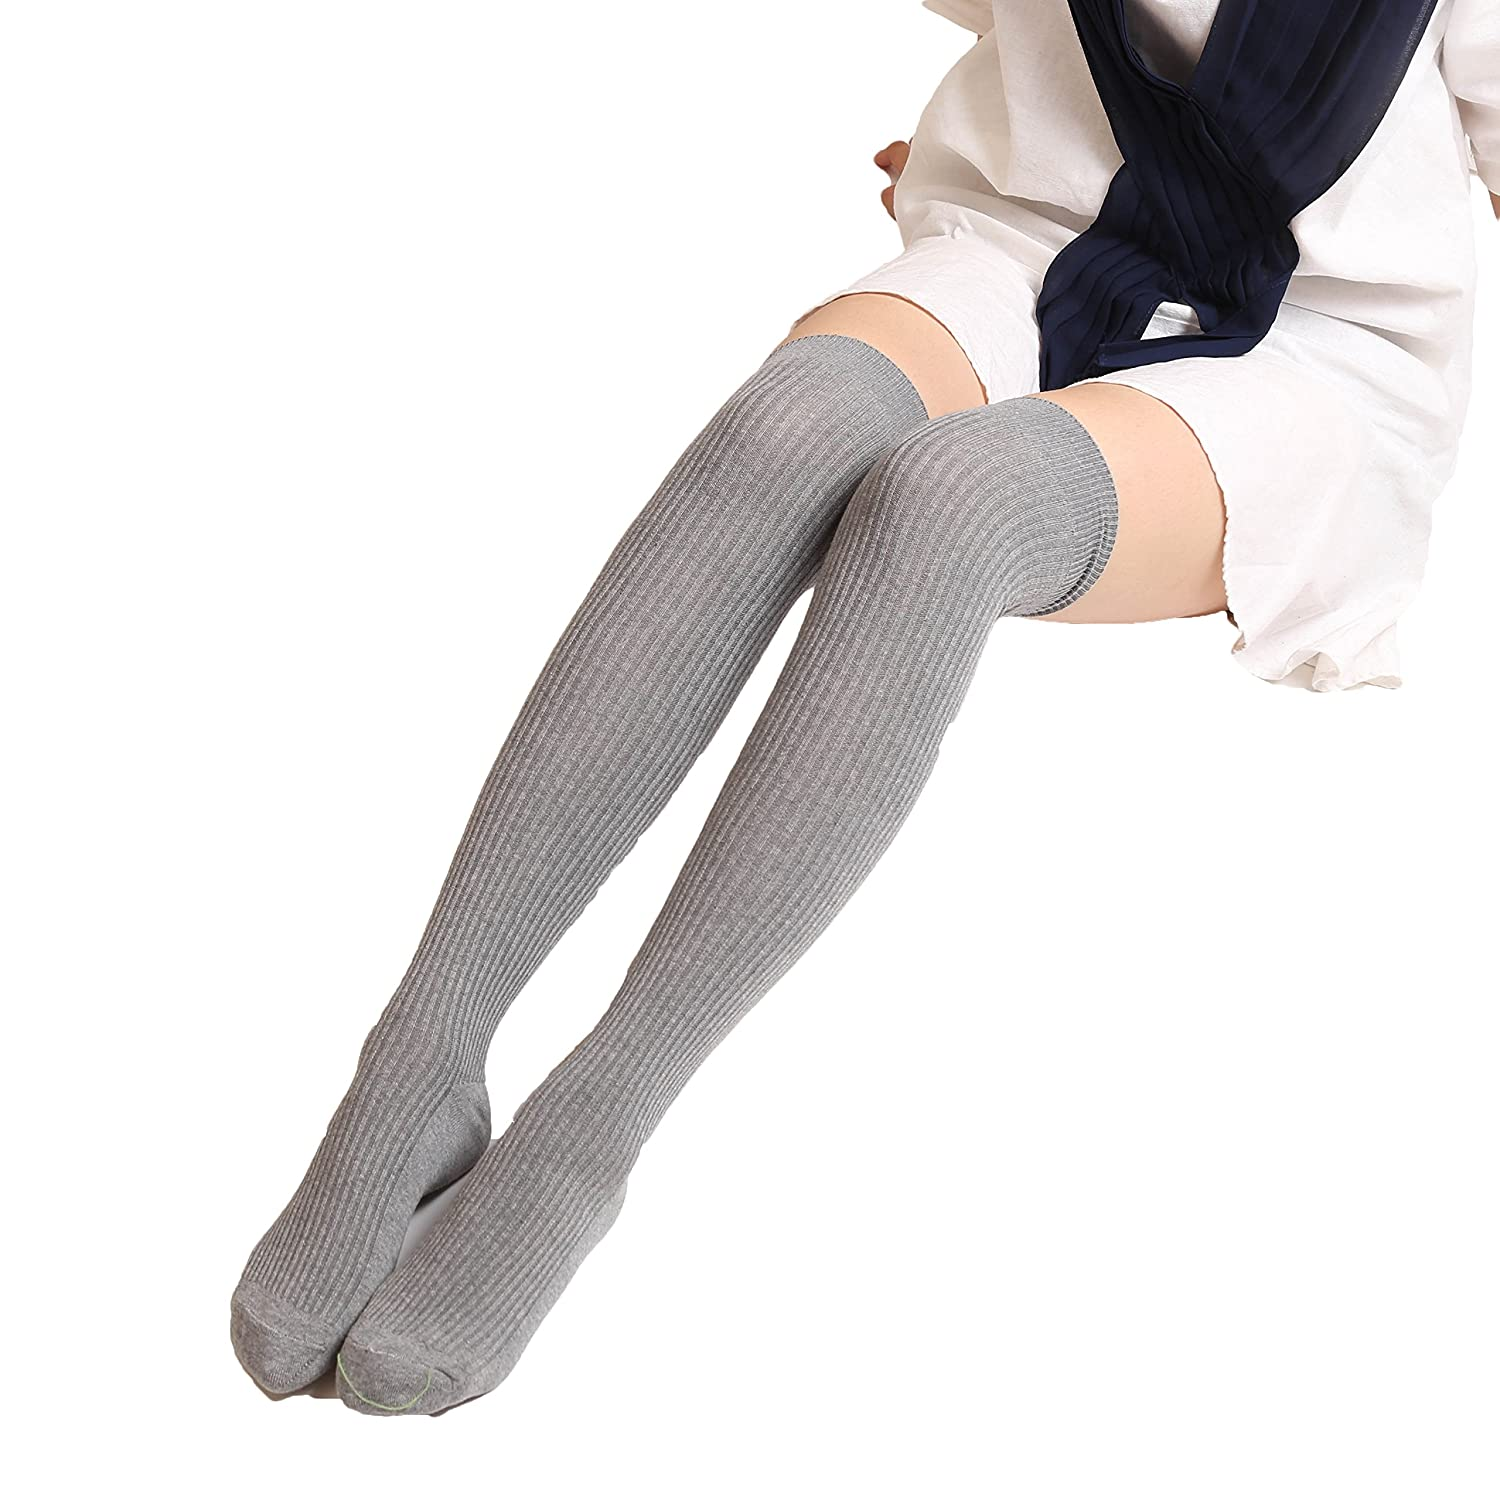 0227e6582a9a7 Womens Thigh High Socks: Our thigh high socks measure 25